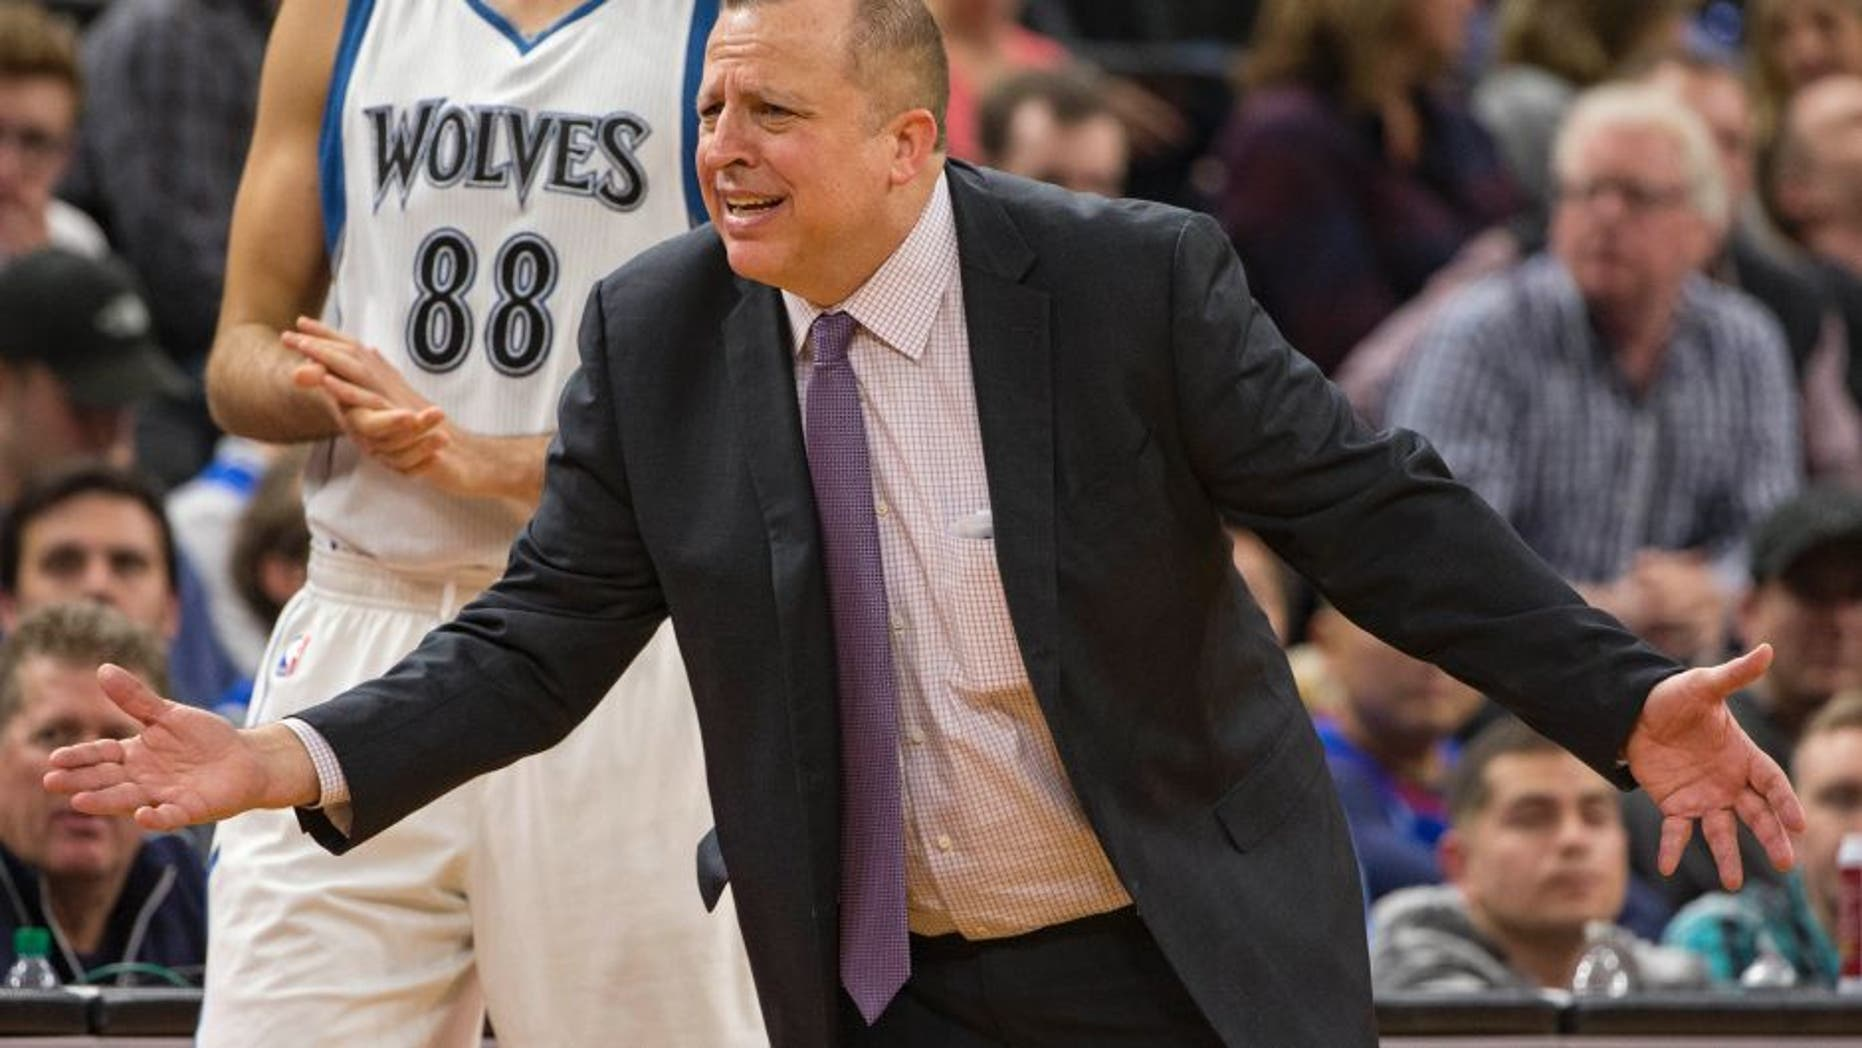 Nov 15, 2016; Minneapolis, MN, USA; Minnesota Timberwolves head coach Tom Thibodeau argues with an official during the second half against the Charlotte Hornets at Target Center. The Hornets won 115-108. Mandatory Credit: Jesse Johnson-USA TODAY Sports